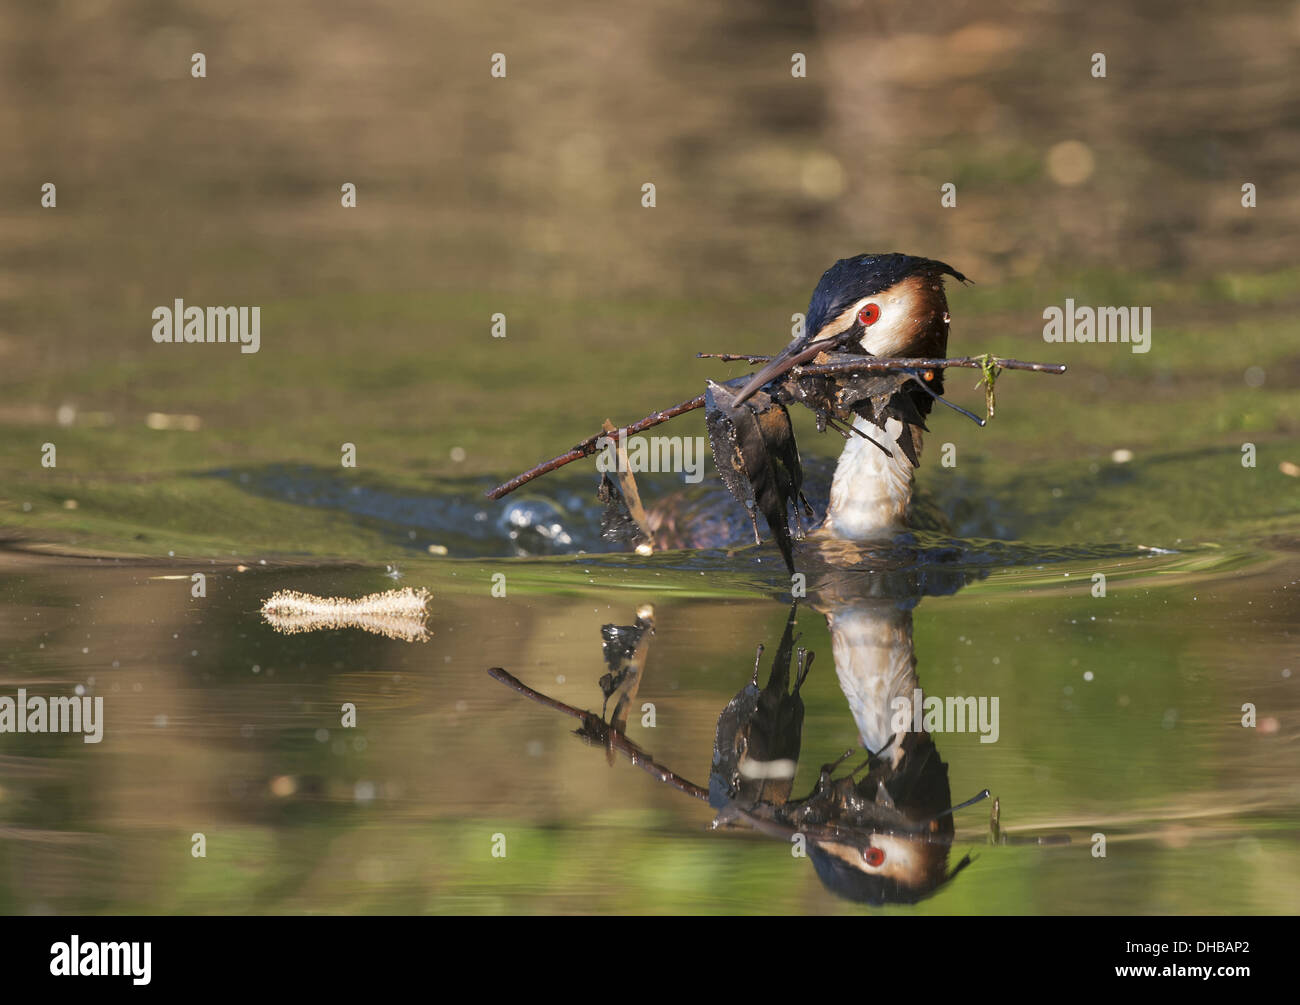 Great Crested Grebe with nesting material, Podiceps cristatus, Germany, Europe - Stock Image